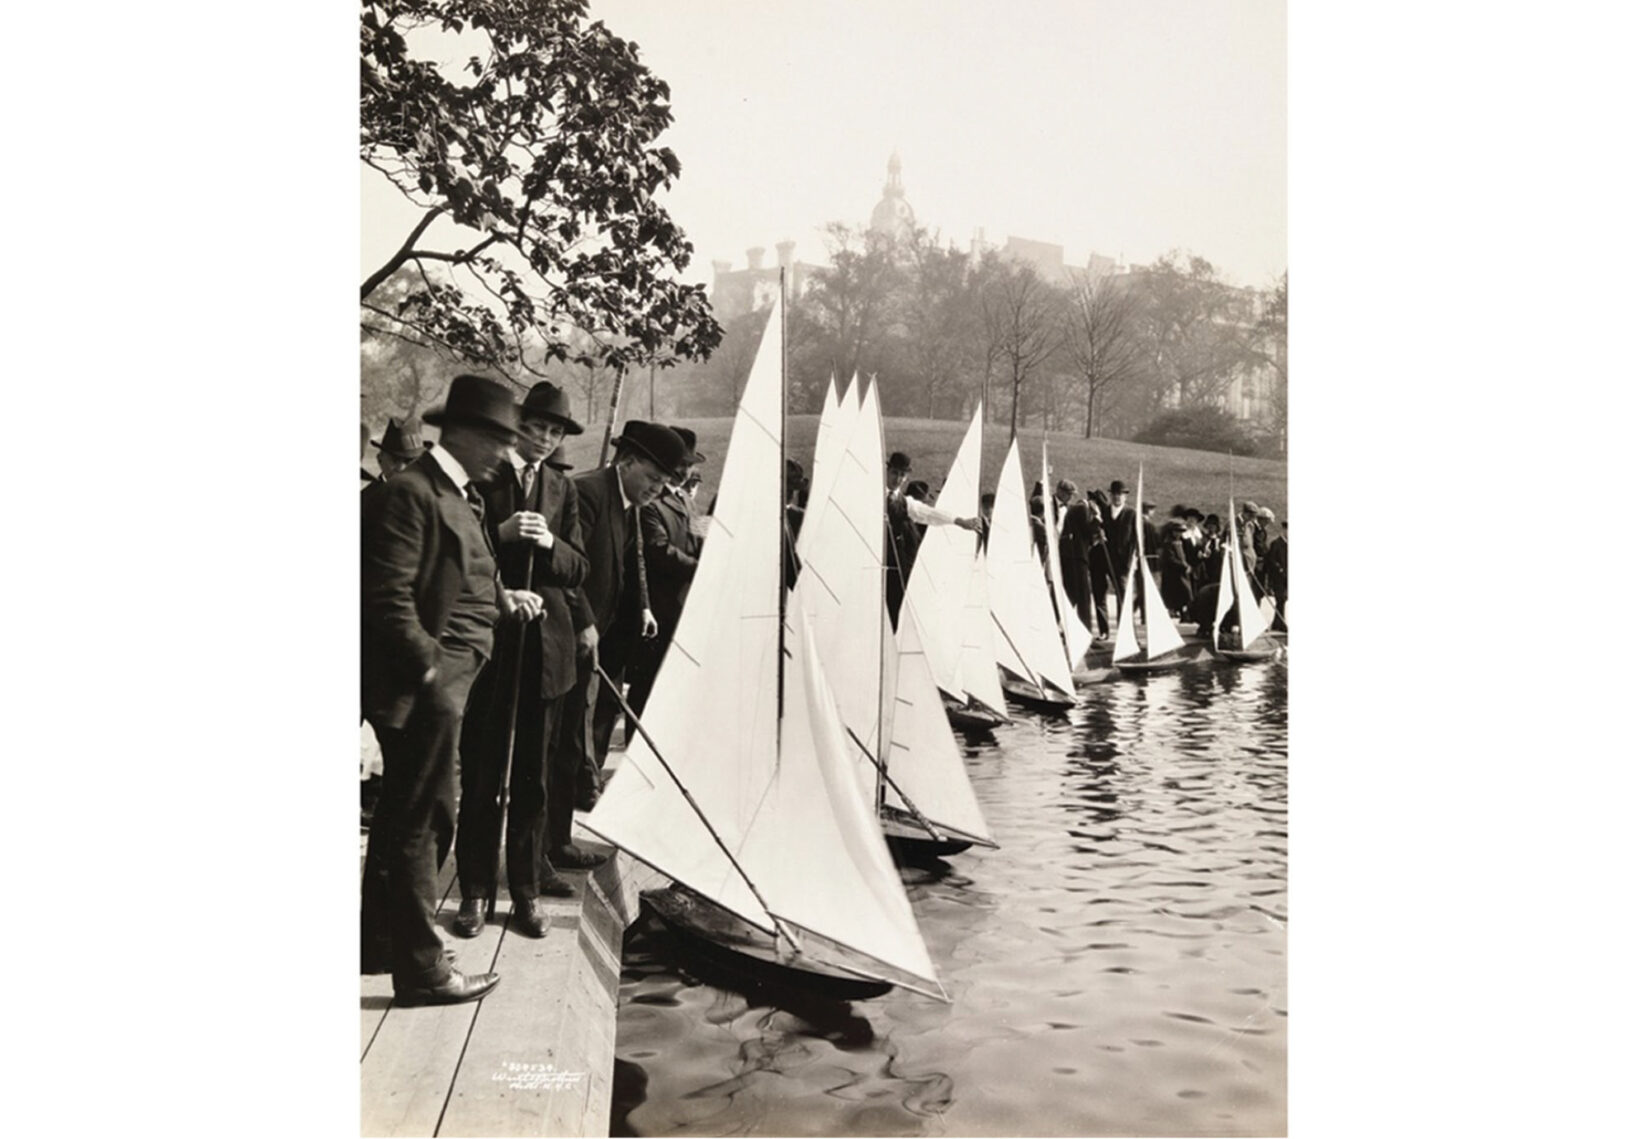 Black-and-white photo of men in suits tending model sailboats along the edge of Conservatory Water